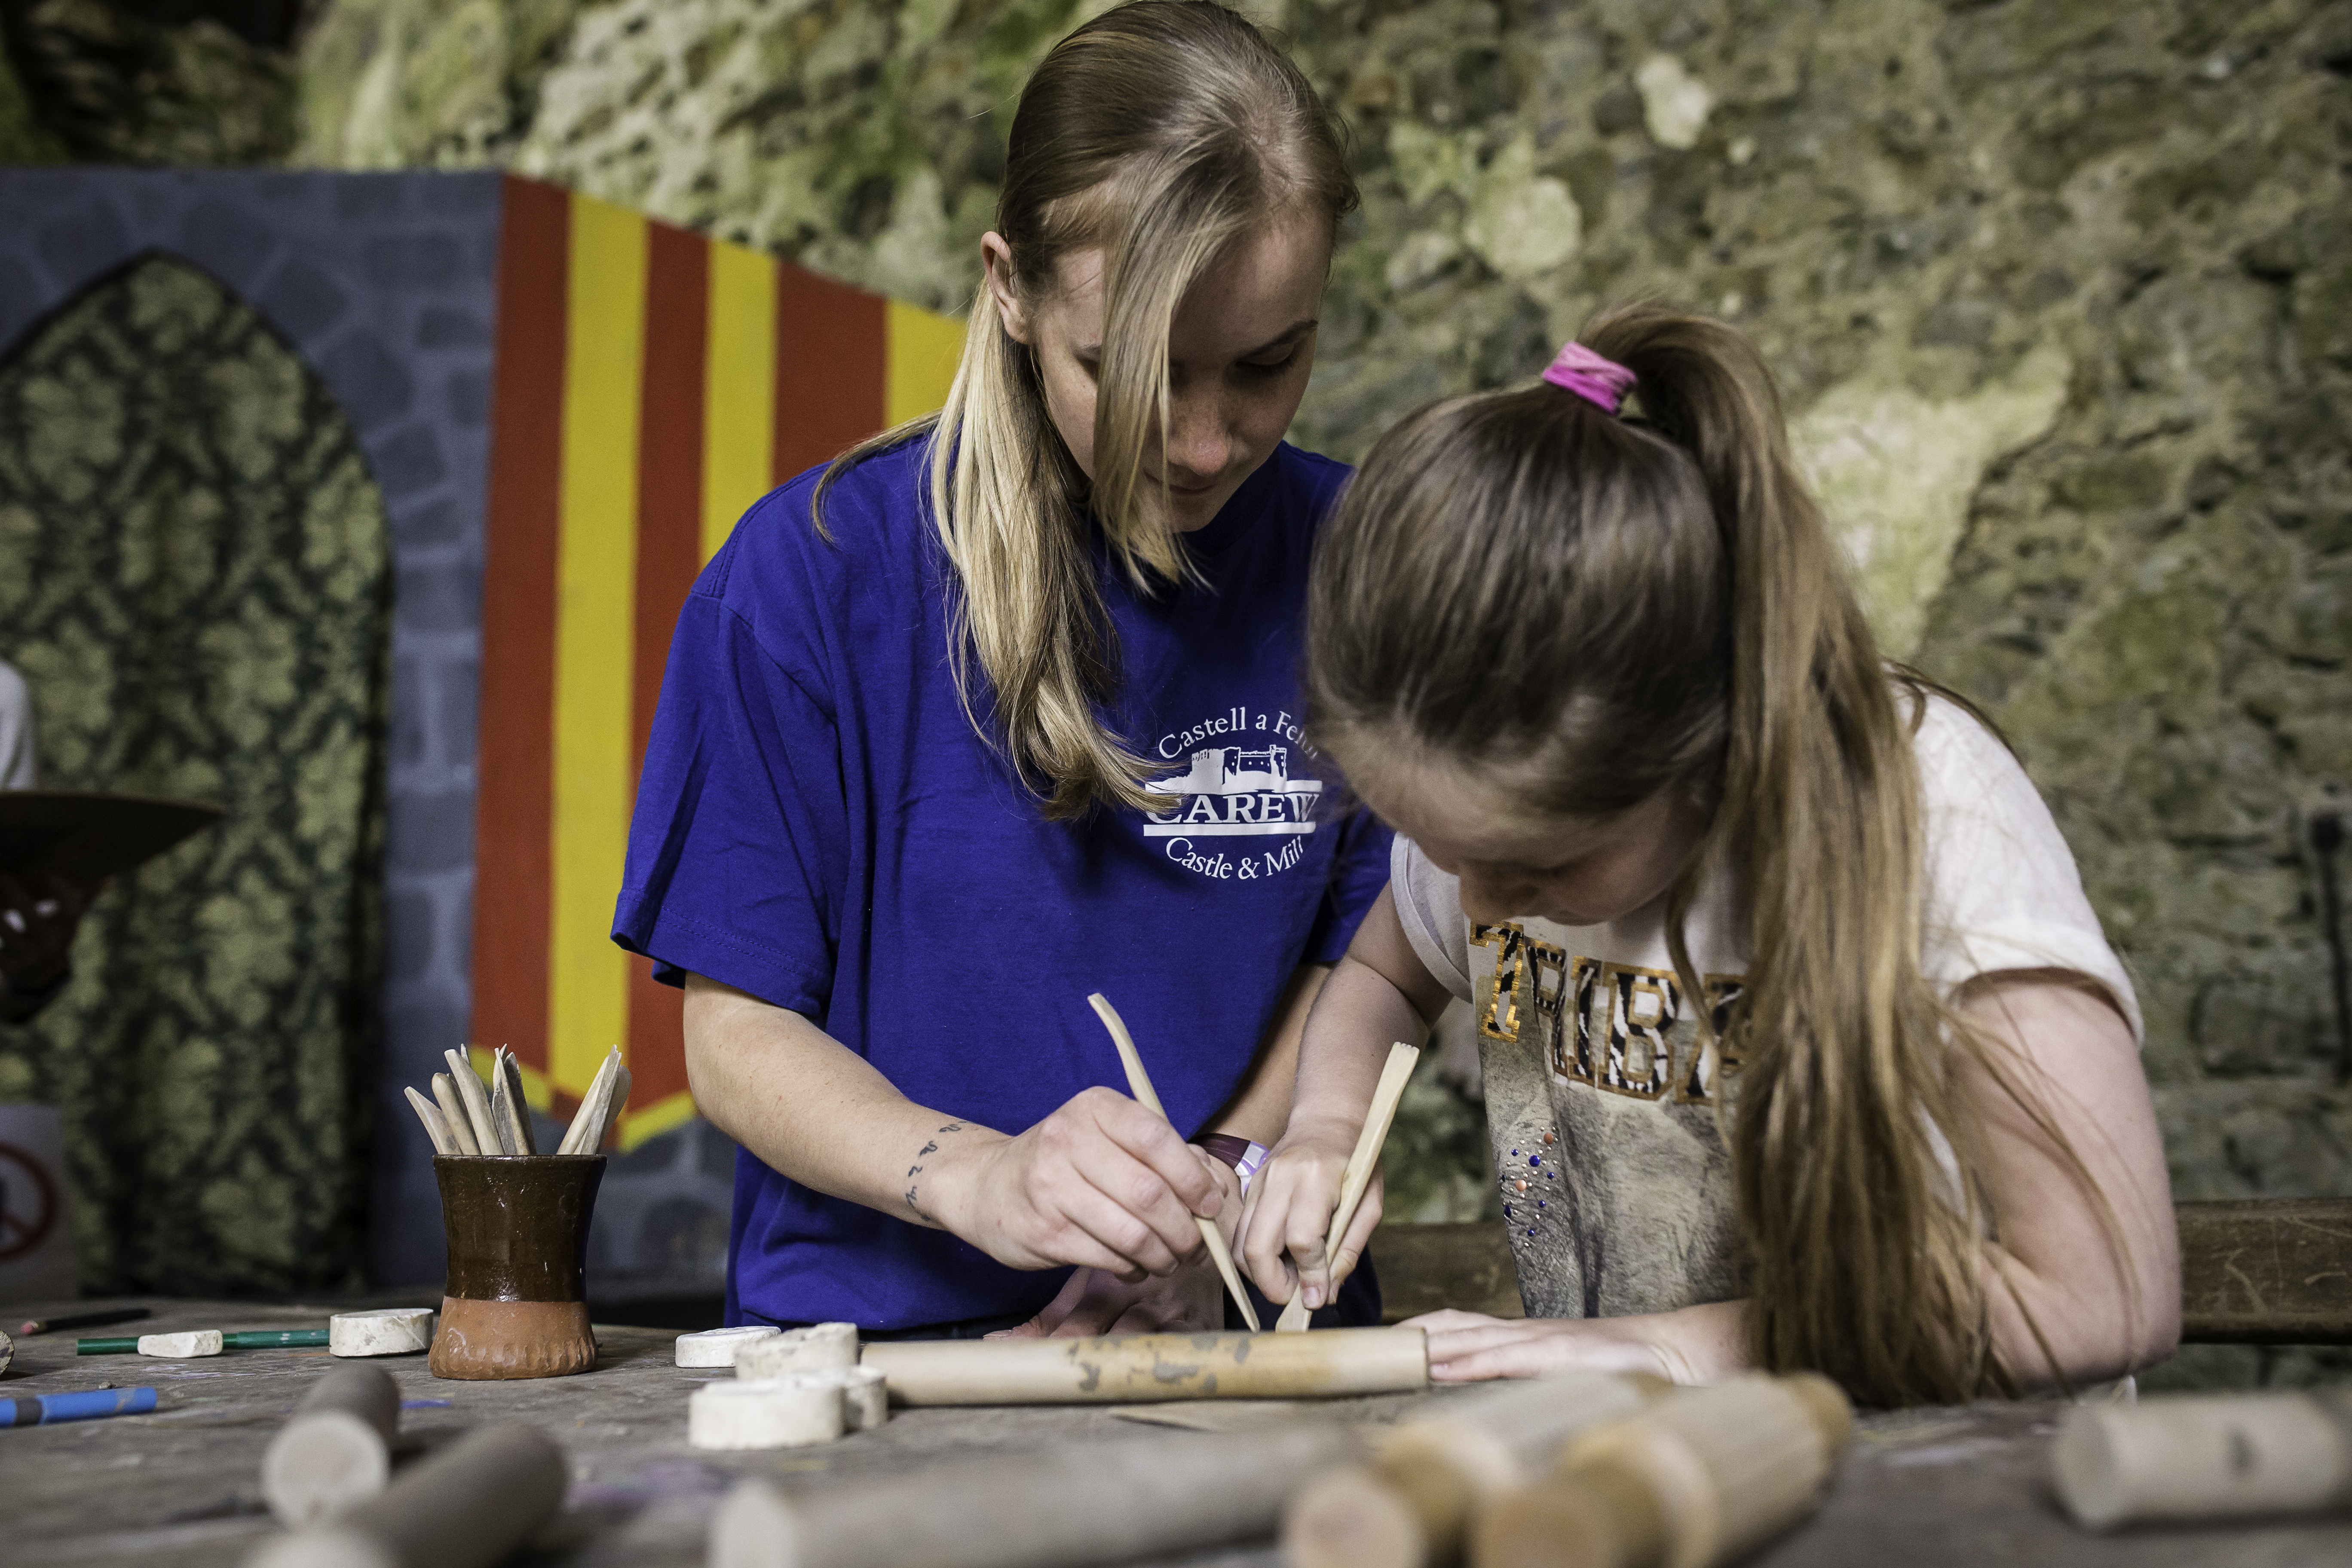 Art activity at Carew Castle and Tidal Mill, Pembrokeshire Coast National Park, Wales, UK